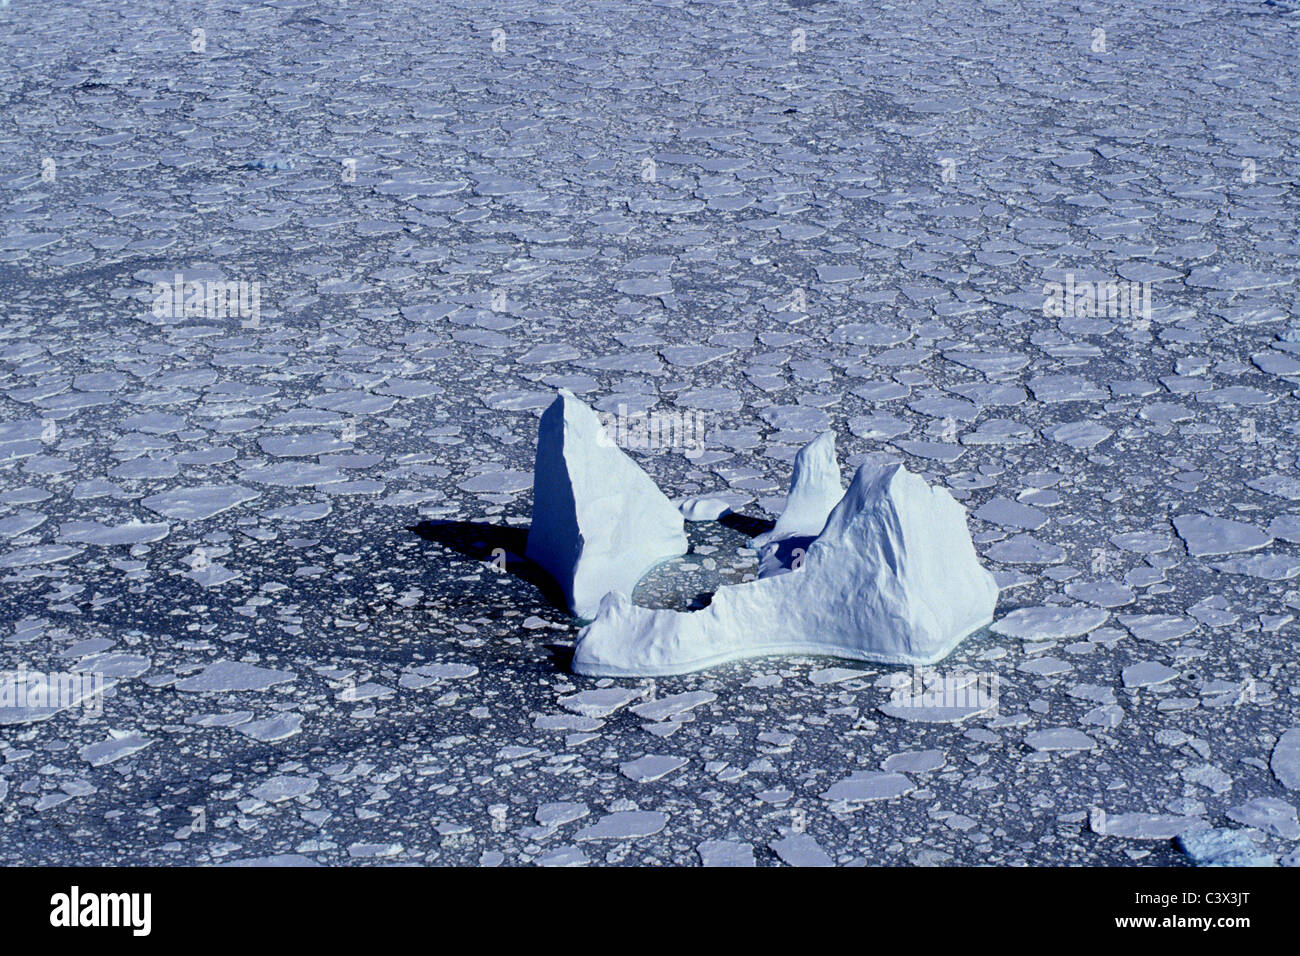 Antarctica. Landscape. Aerial of floating iceberg and pack ice. - Stock Image